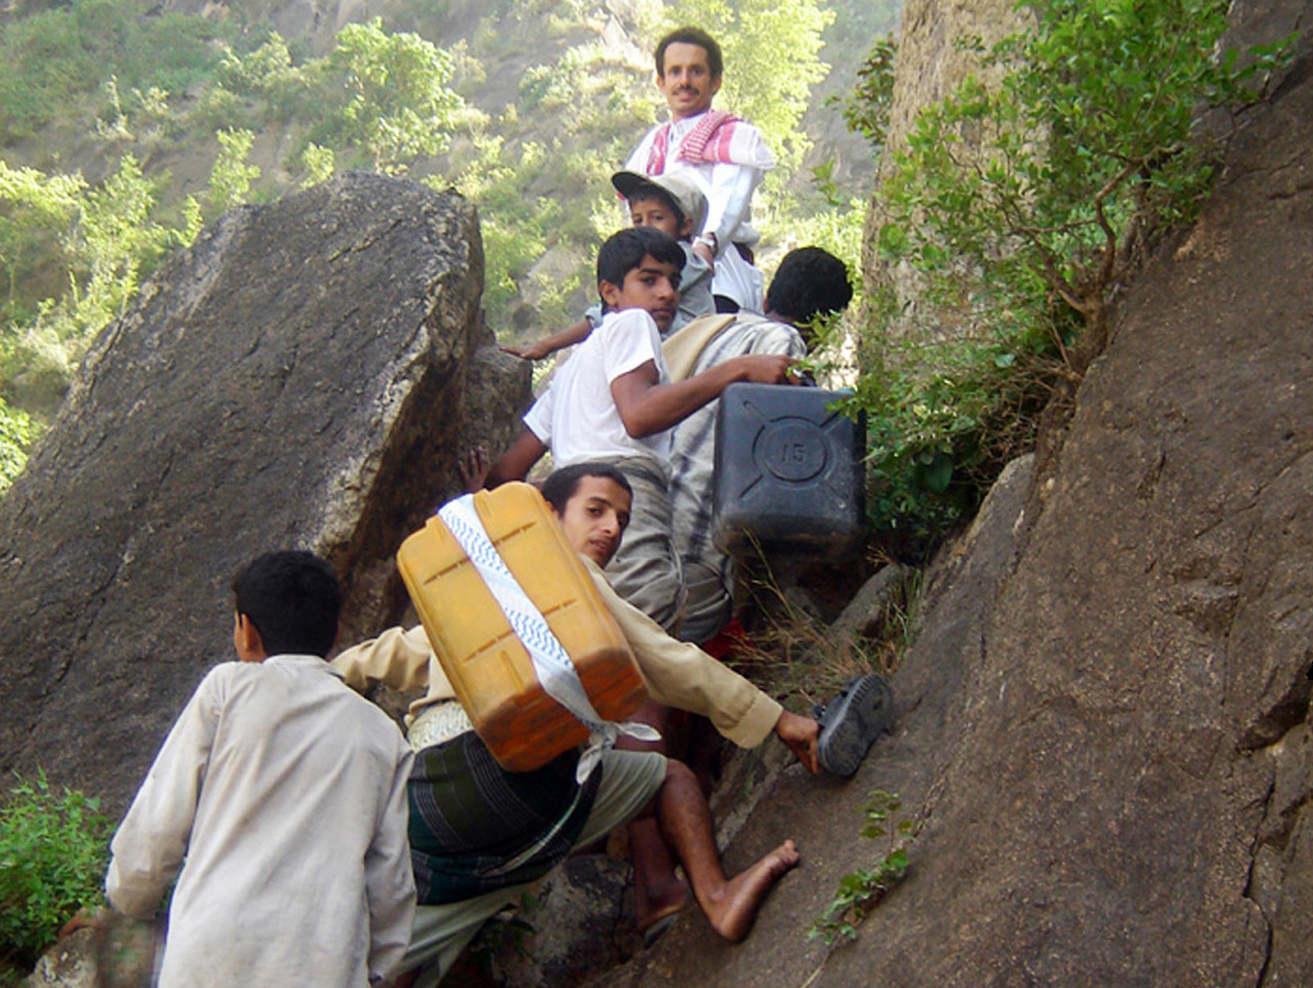 Milhan locals must climb 1,500-1,800m-high mountains to reach springs to get water, Yemen